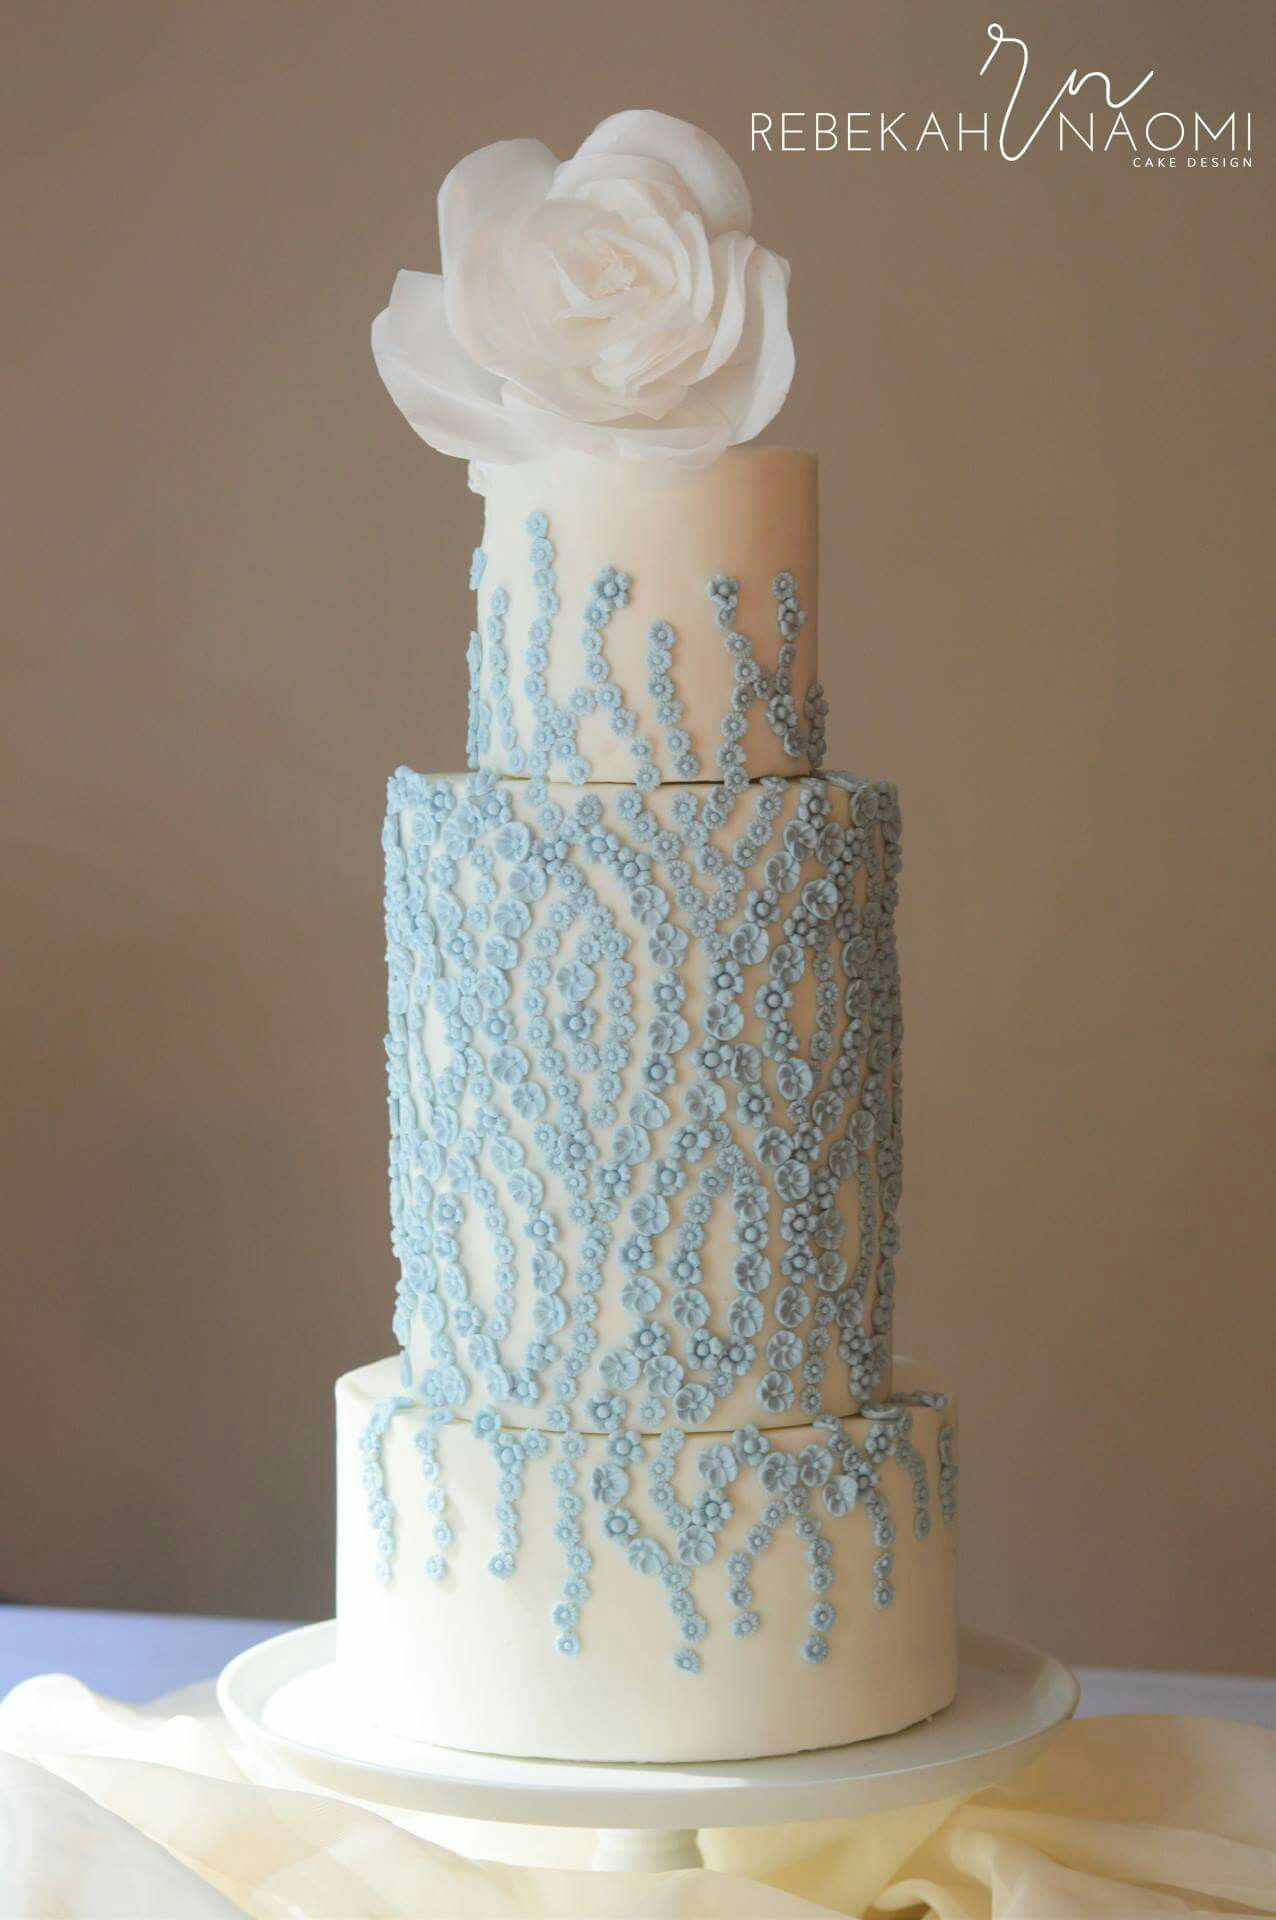 Pin by Danielle Asanza on Bake bake bake | Pinterest | Cake and Frosting